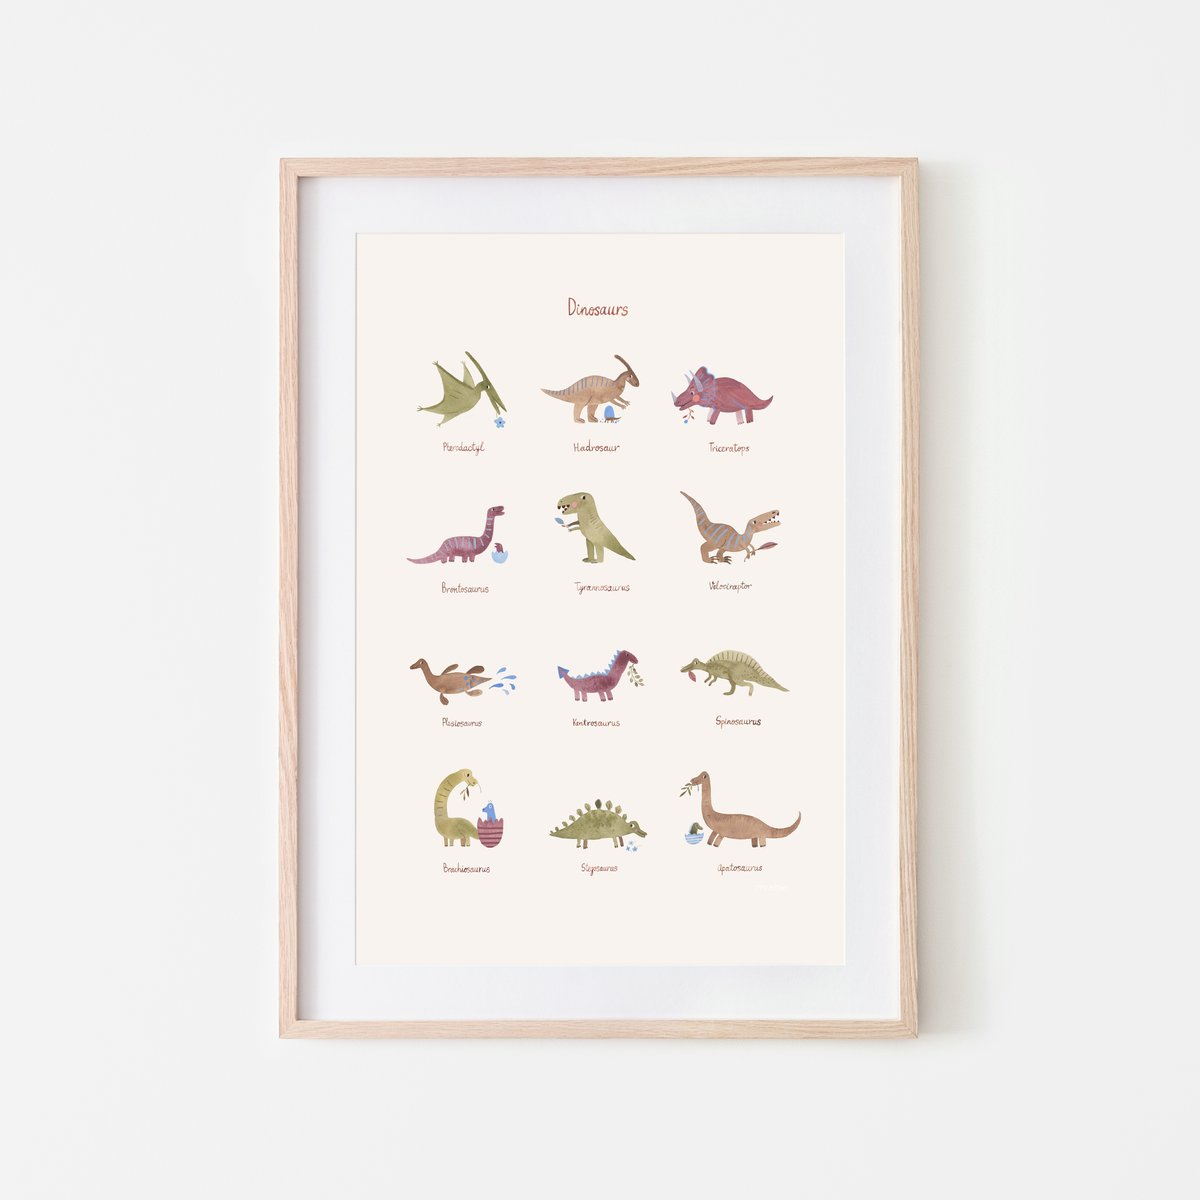 Dinosaurs Poster || 18x24